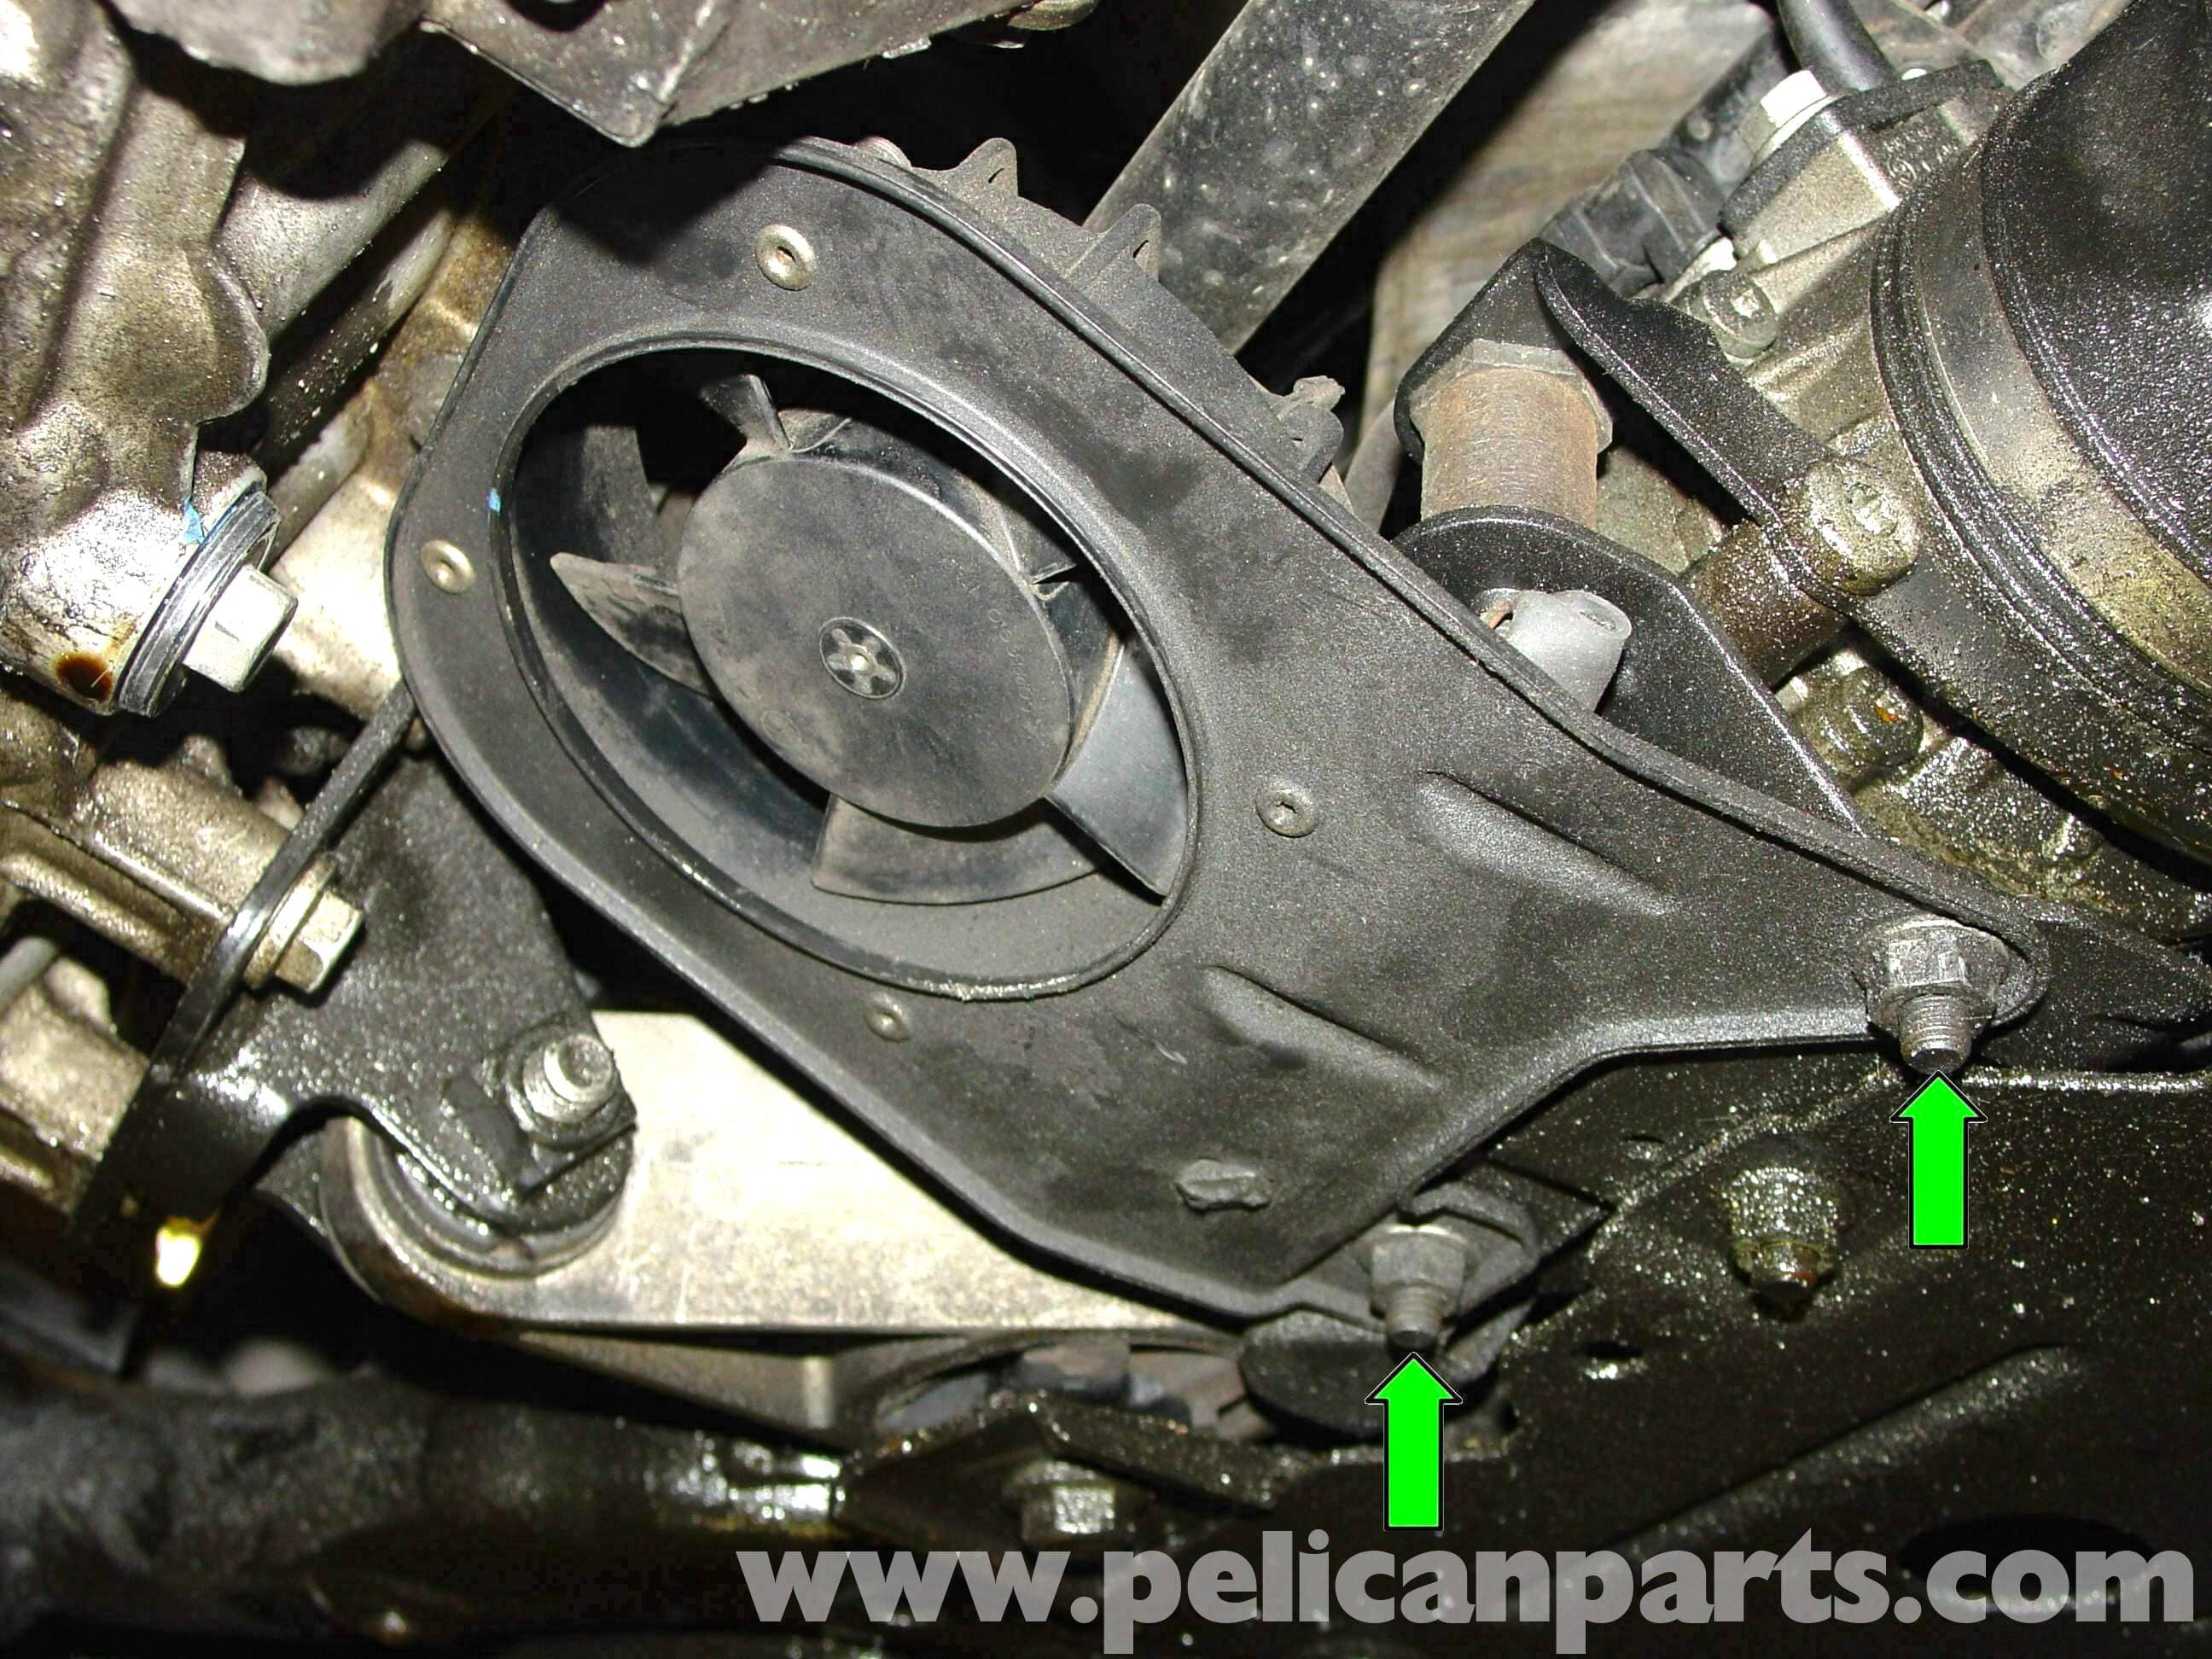 Mini Cooper Power Steering Pump Replacement R50 R52 R53 2001 2006 Pelican Parts Diy Maintenance Article